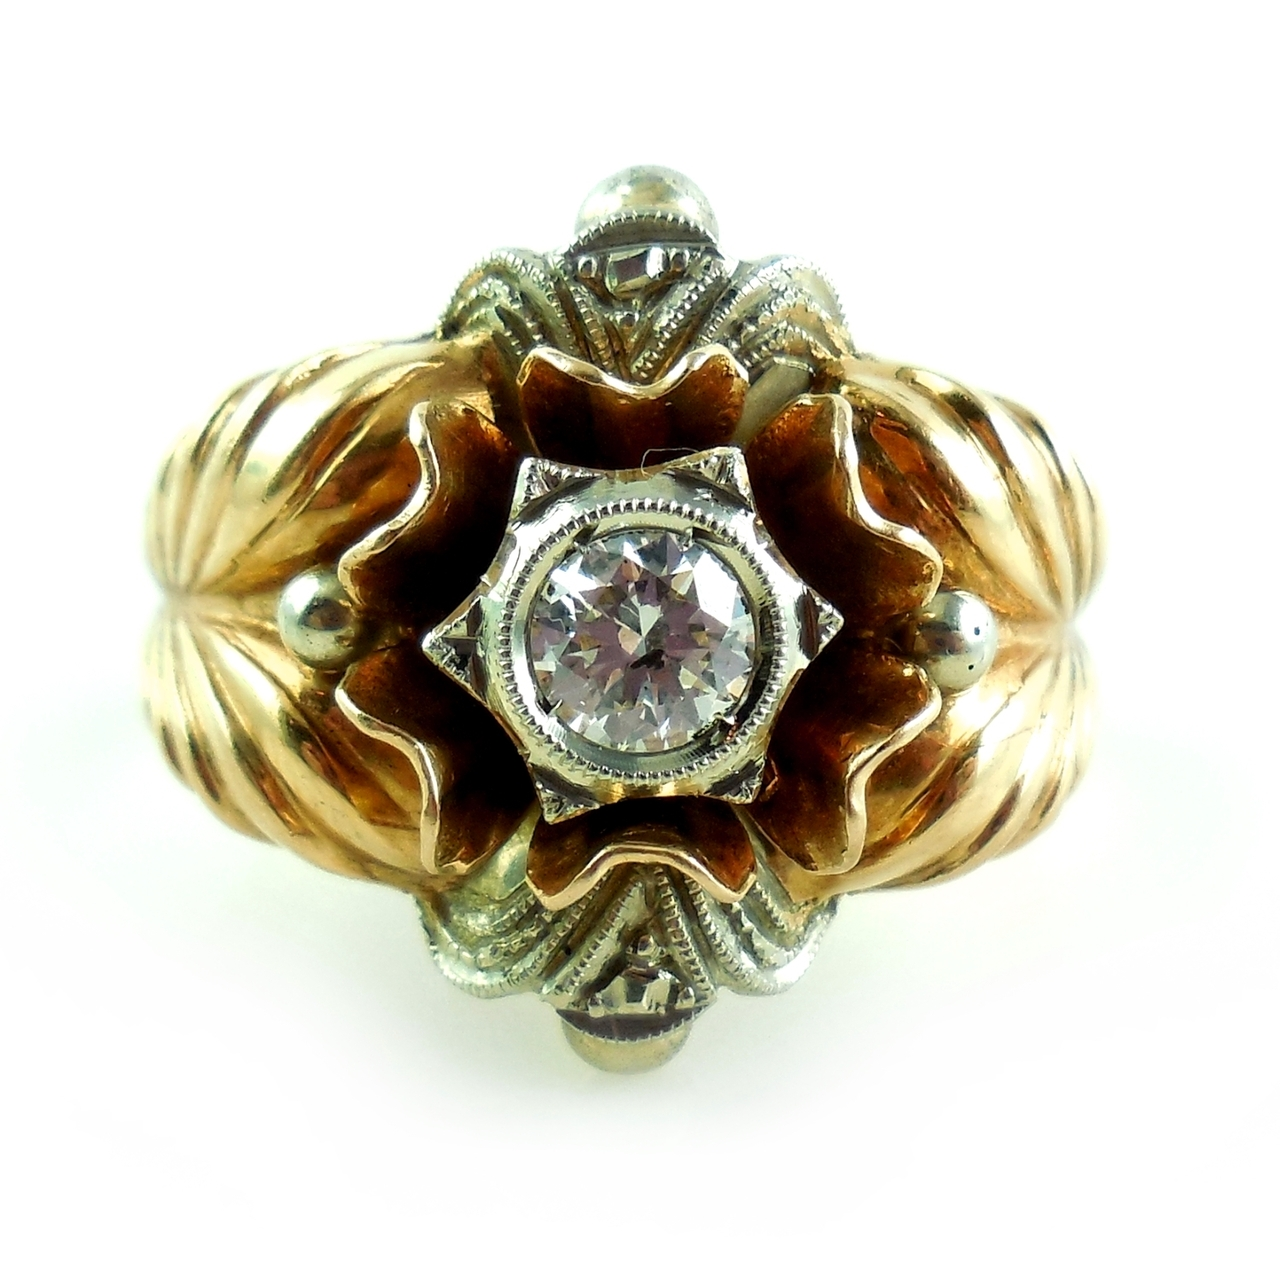 Antique Hallmarked 18k Gold .7 Carat Diamond Ring Size 8.5